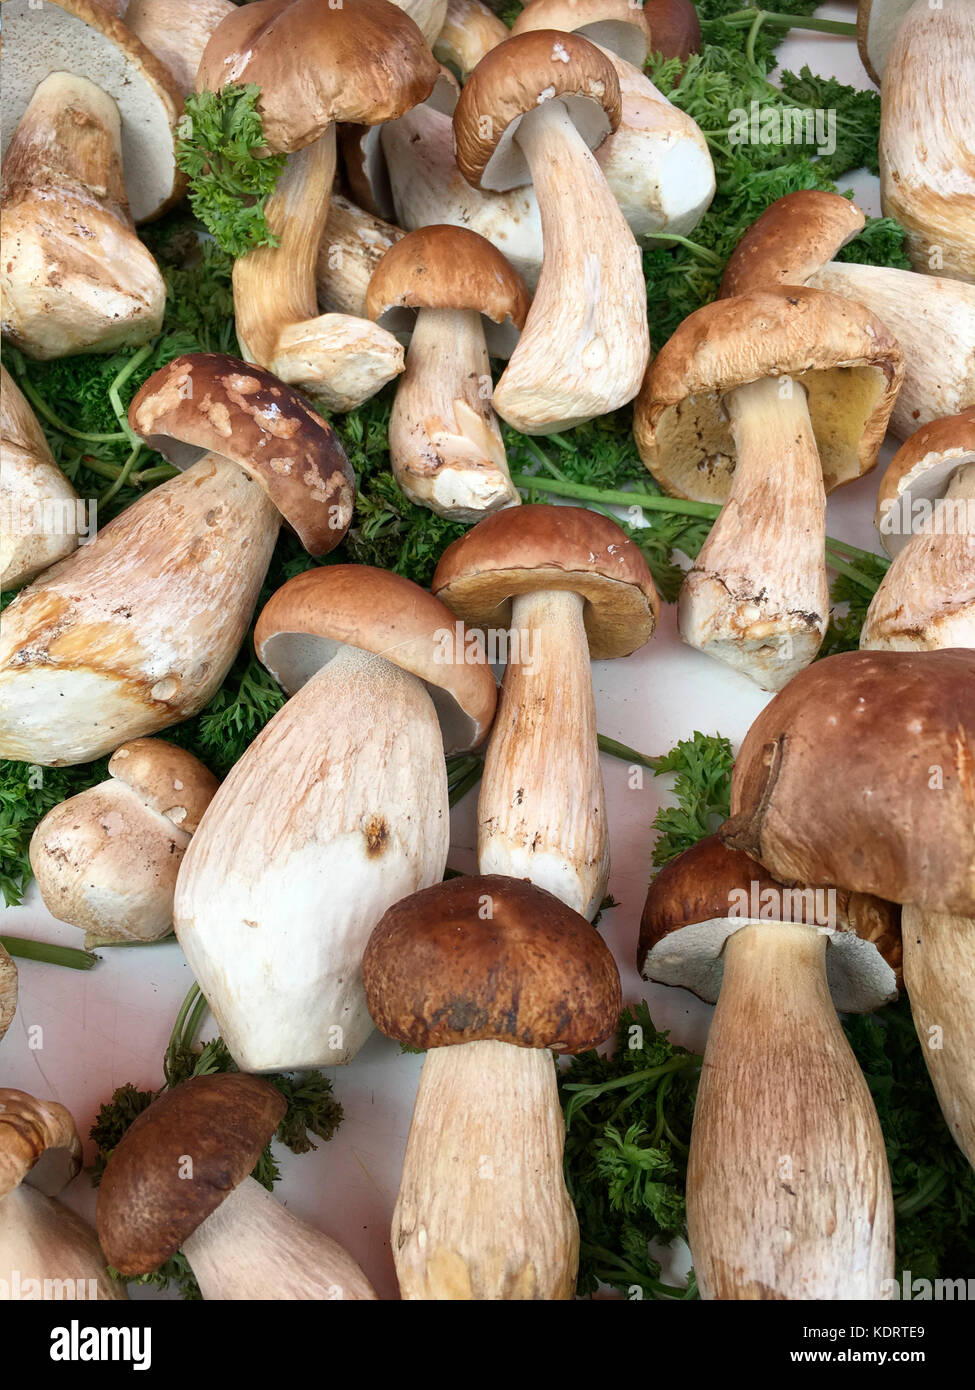 Selection of freshly foraged wild mushrooms - Stock Image